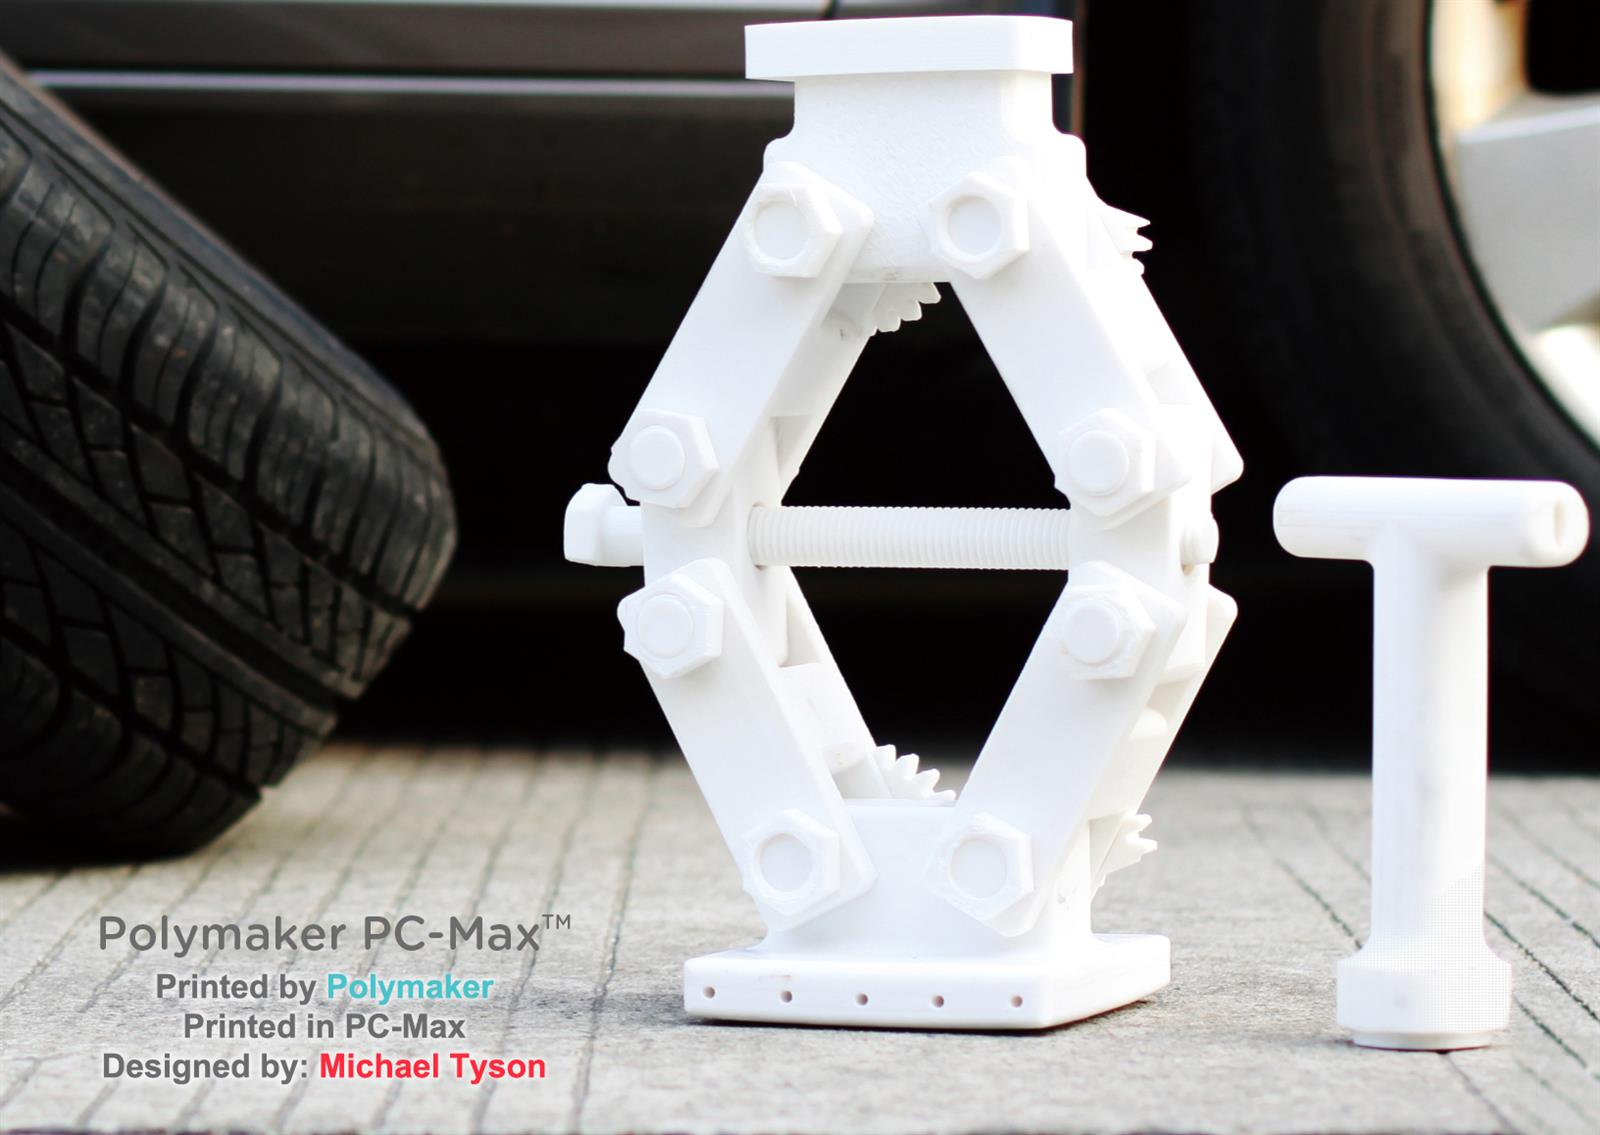 Design of car jack - Nicolas Tokotuu From Polymaker Decided To See If Our Jack Design Printed In The New Pc Max Could Lift A Real Car When Printing Nicolas Decided To Print